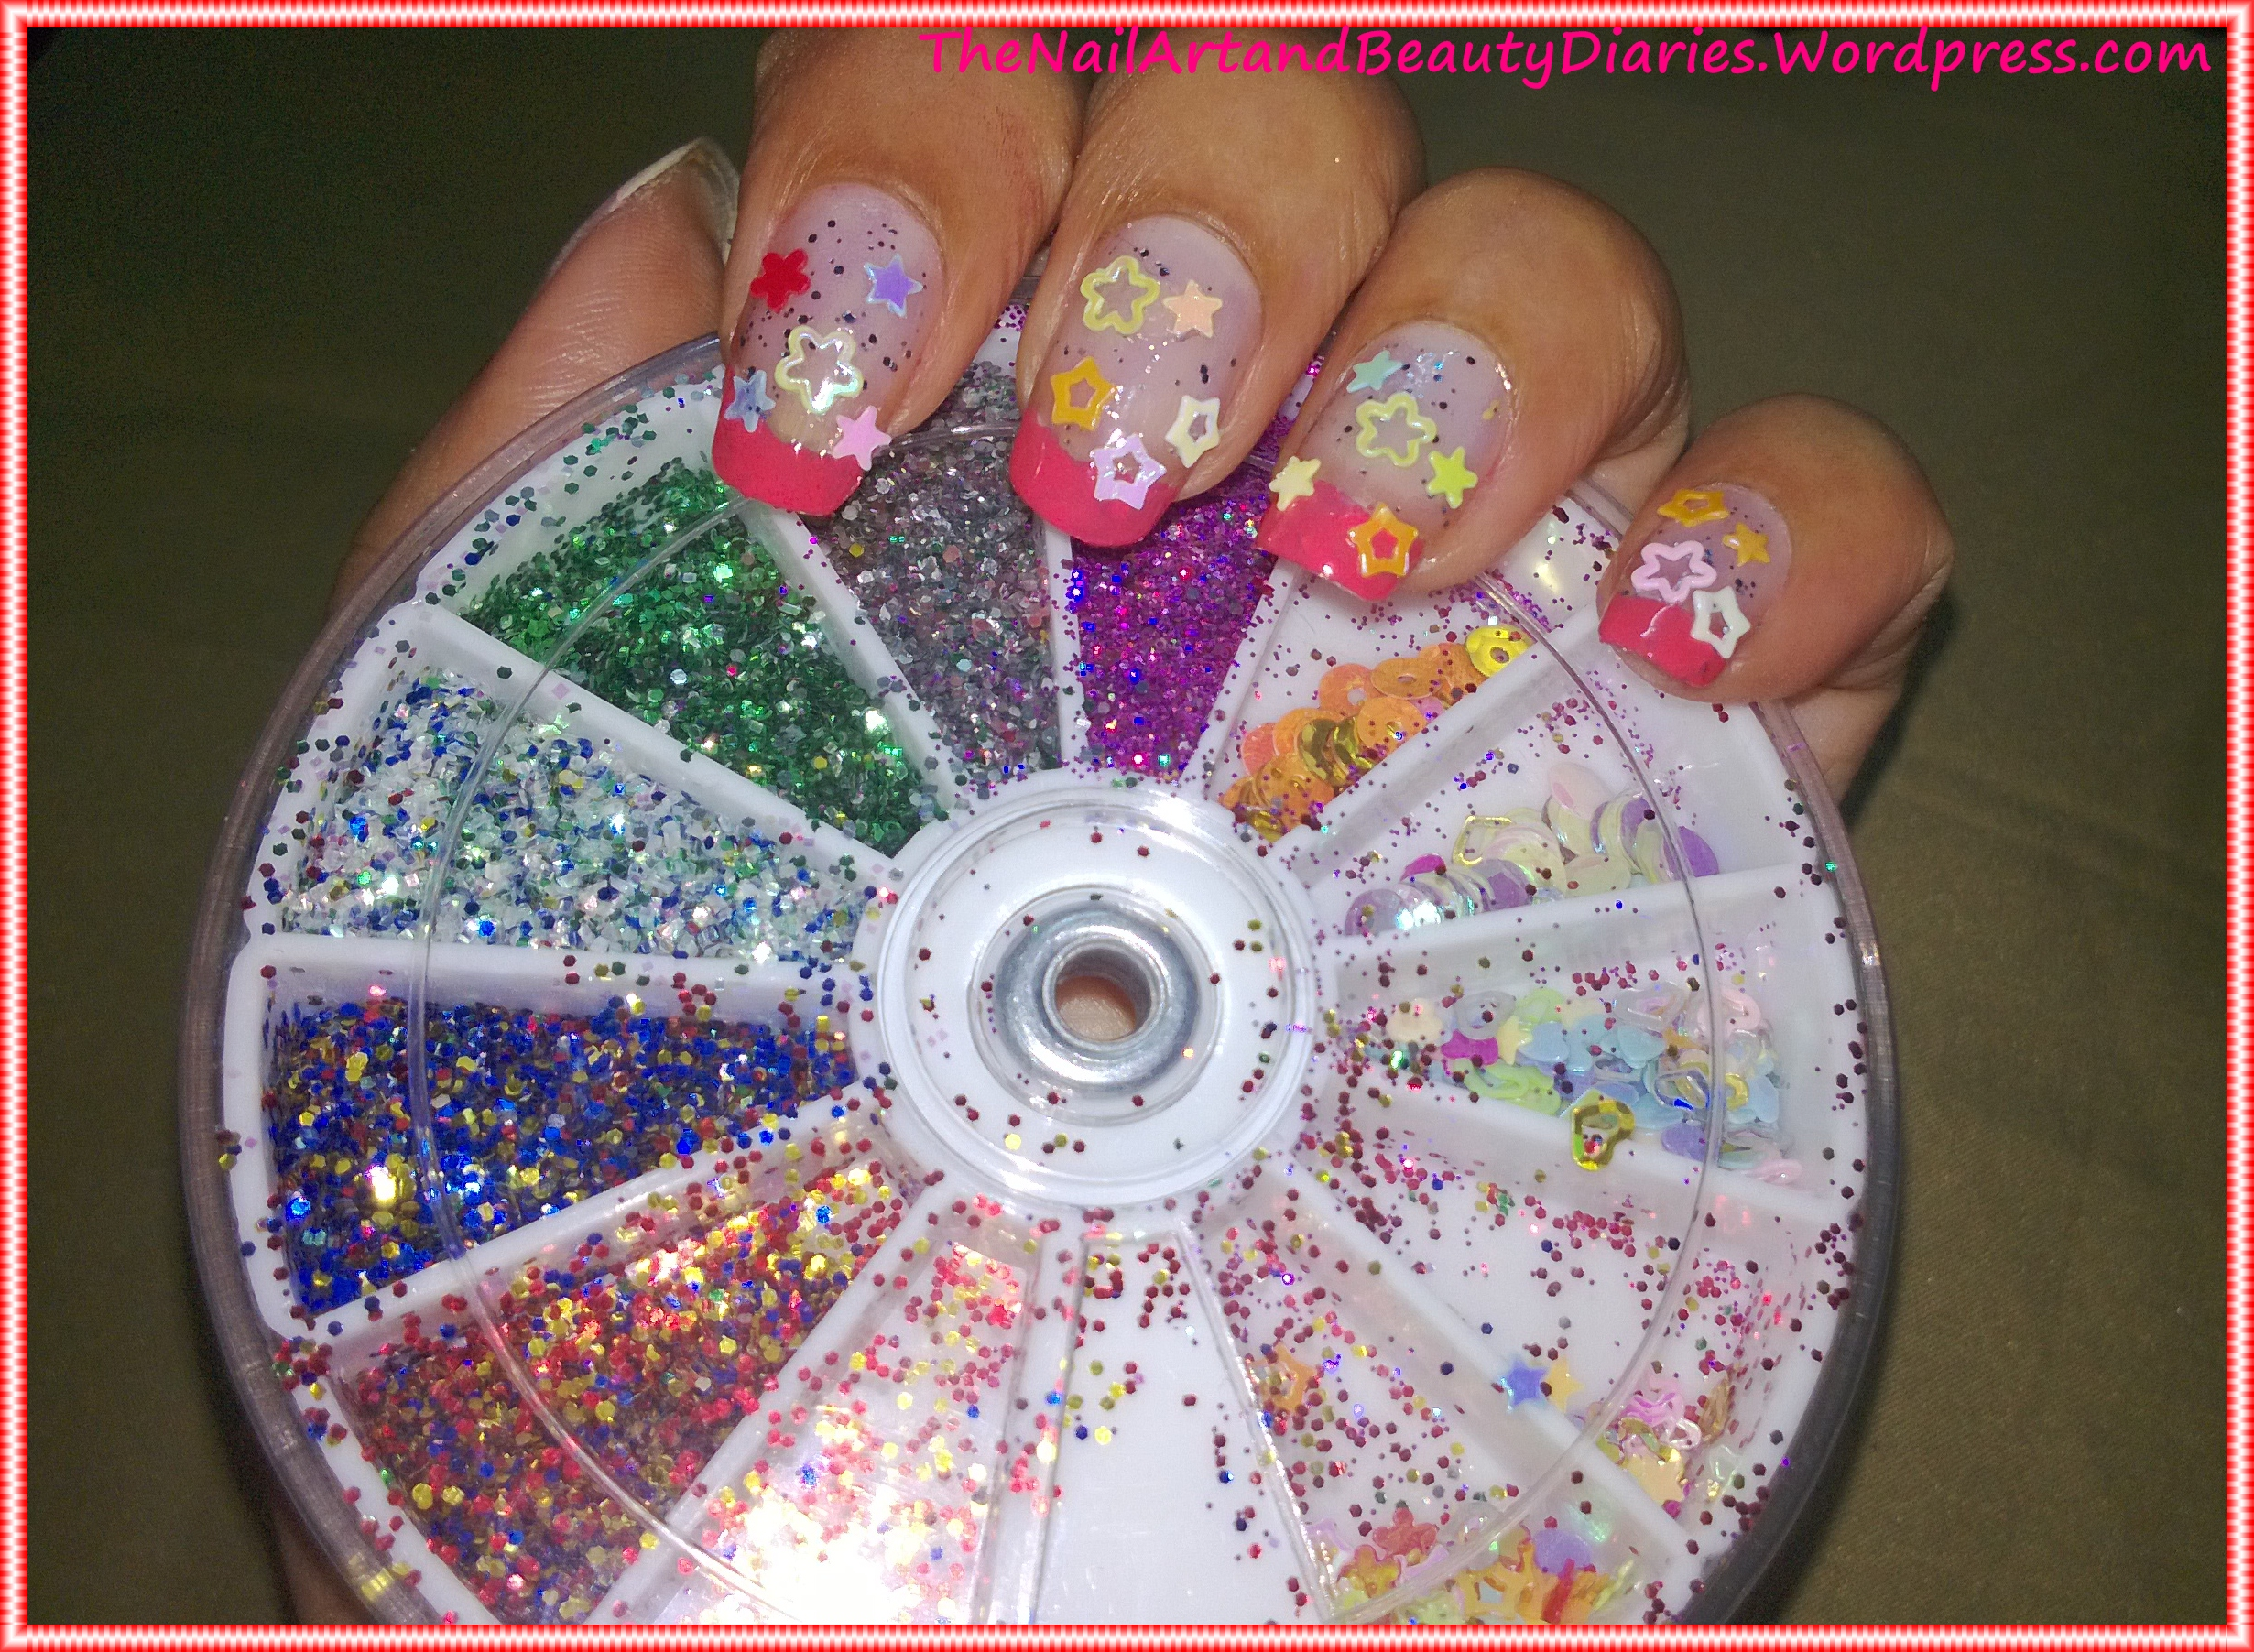 The Glitters and Stars Nail Art   The Nail Art and Beauty Diaries